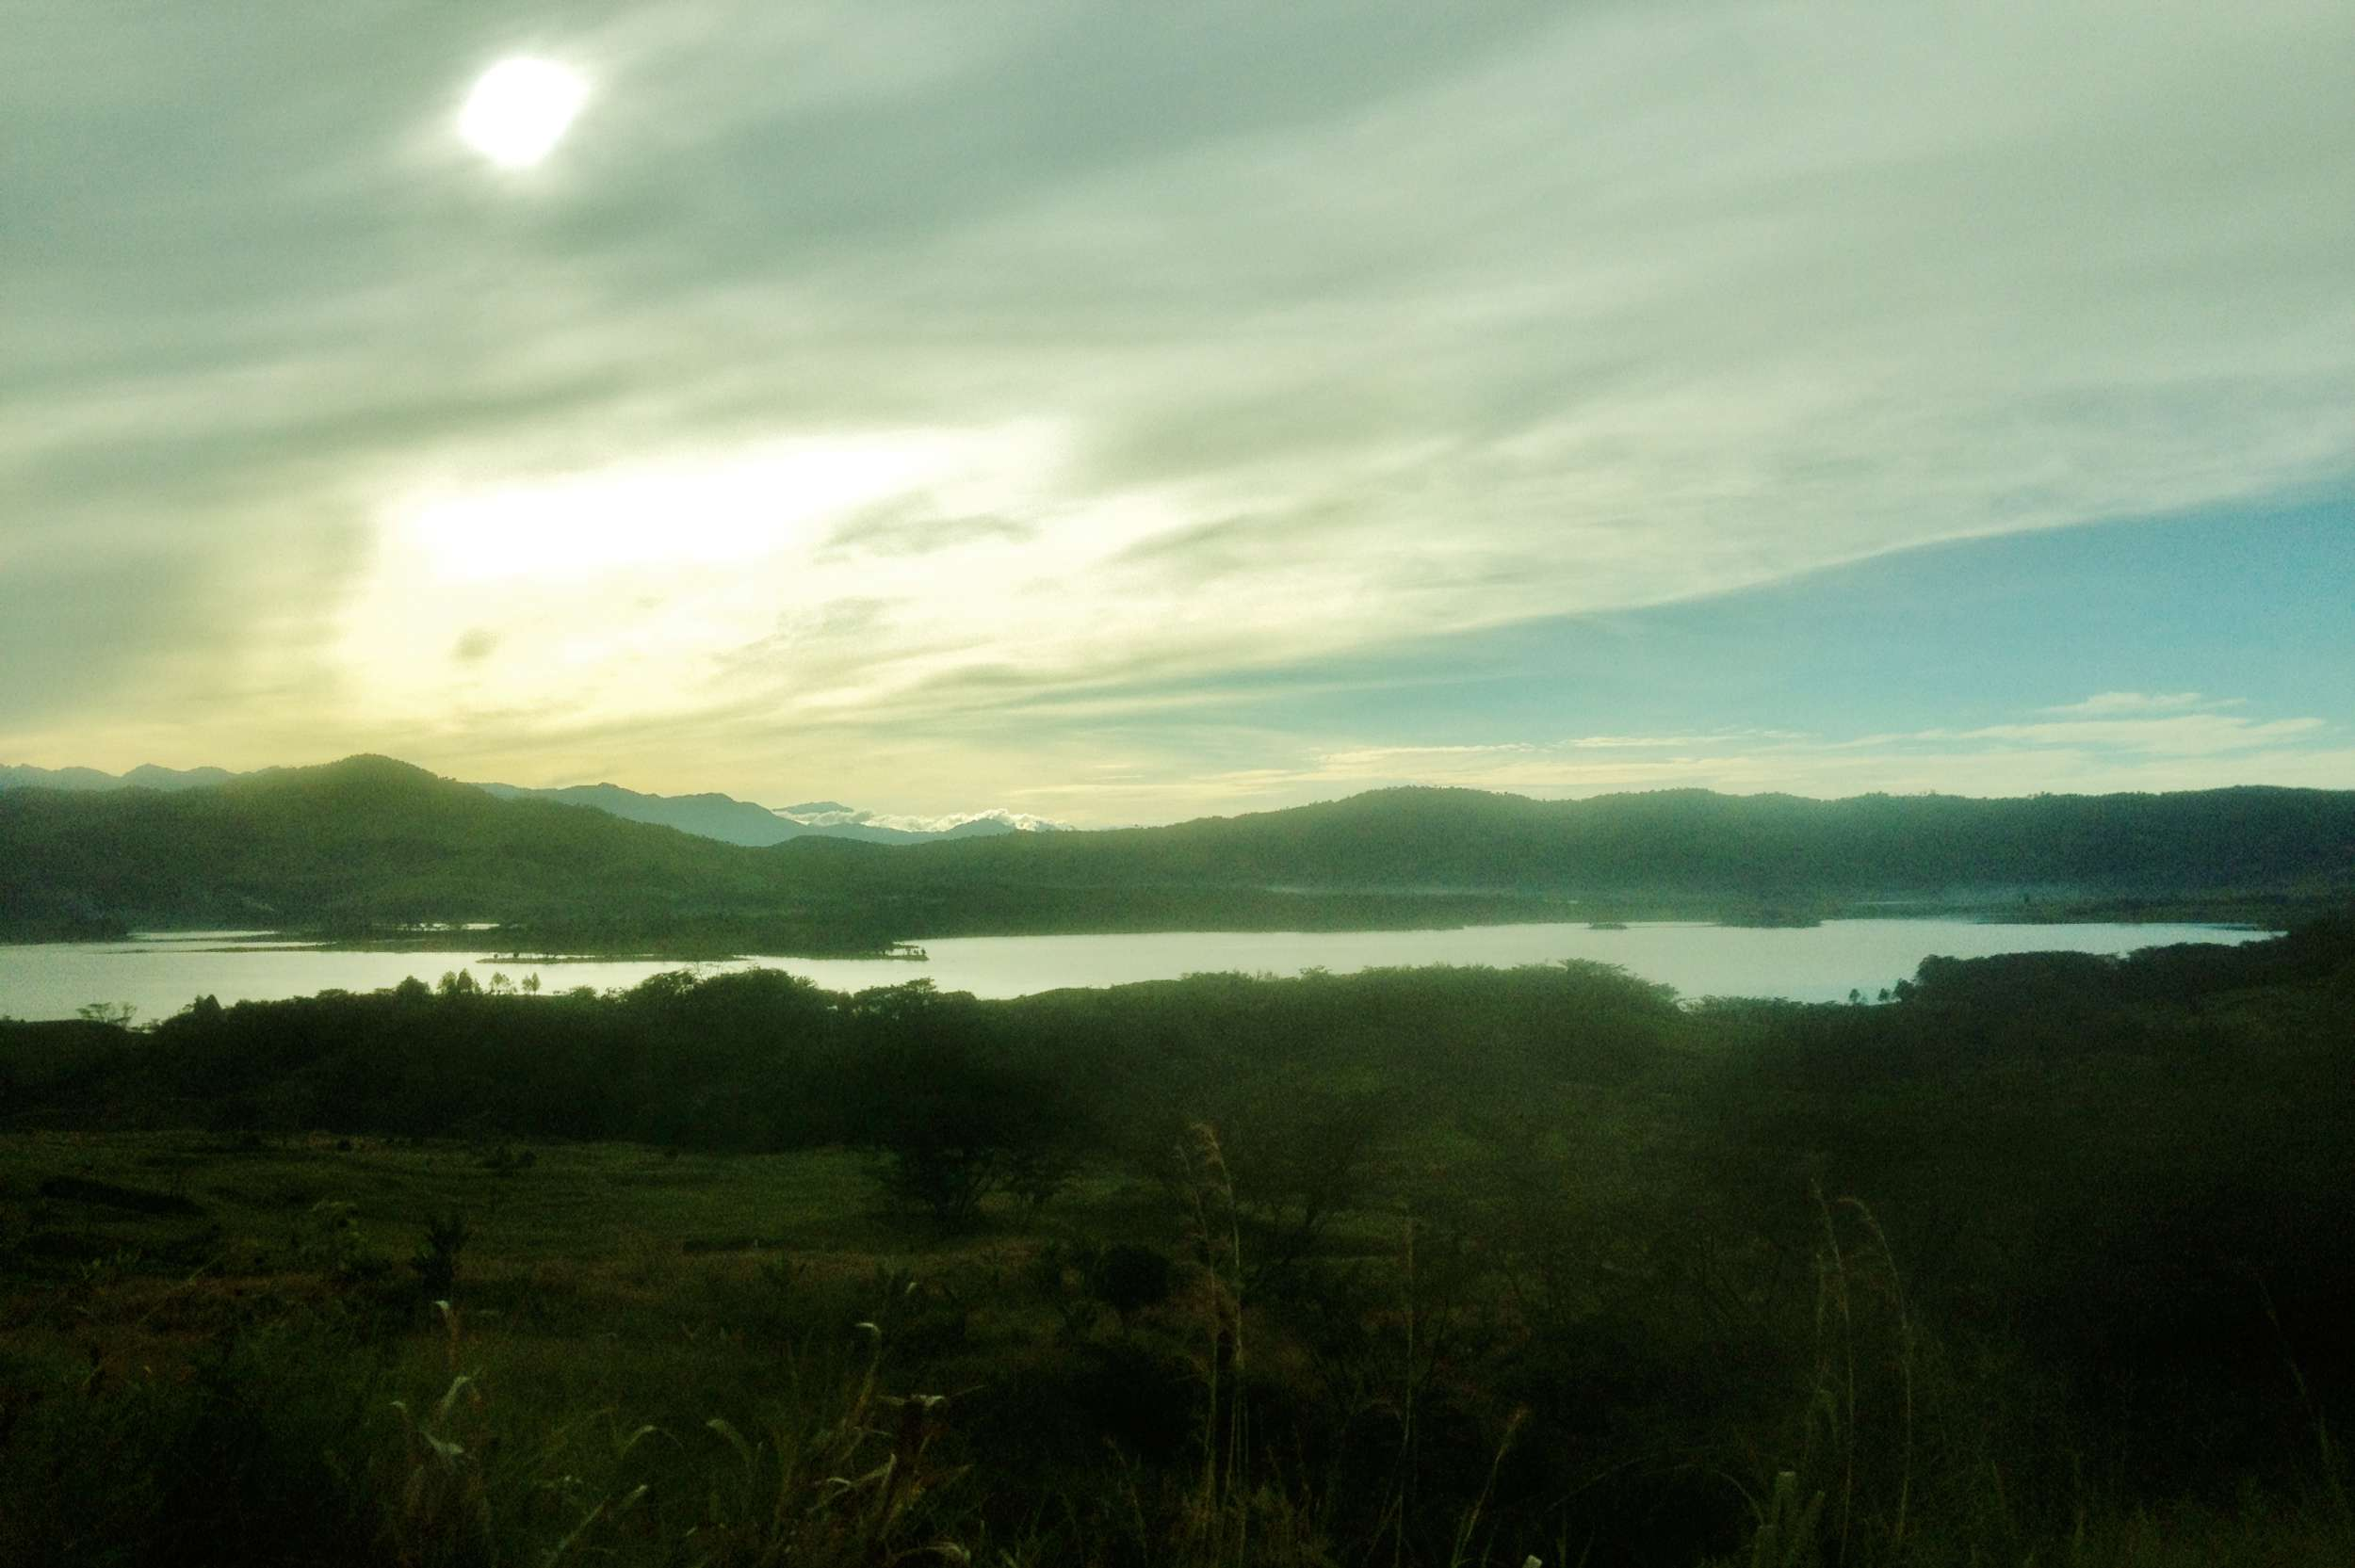 These are just a few pics from the car on the way to the Markham Valley.